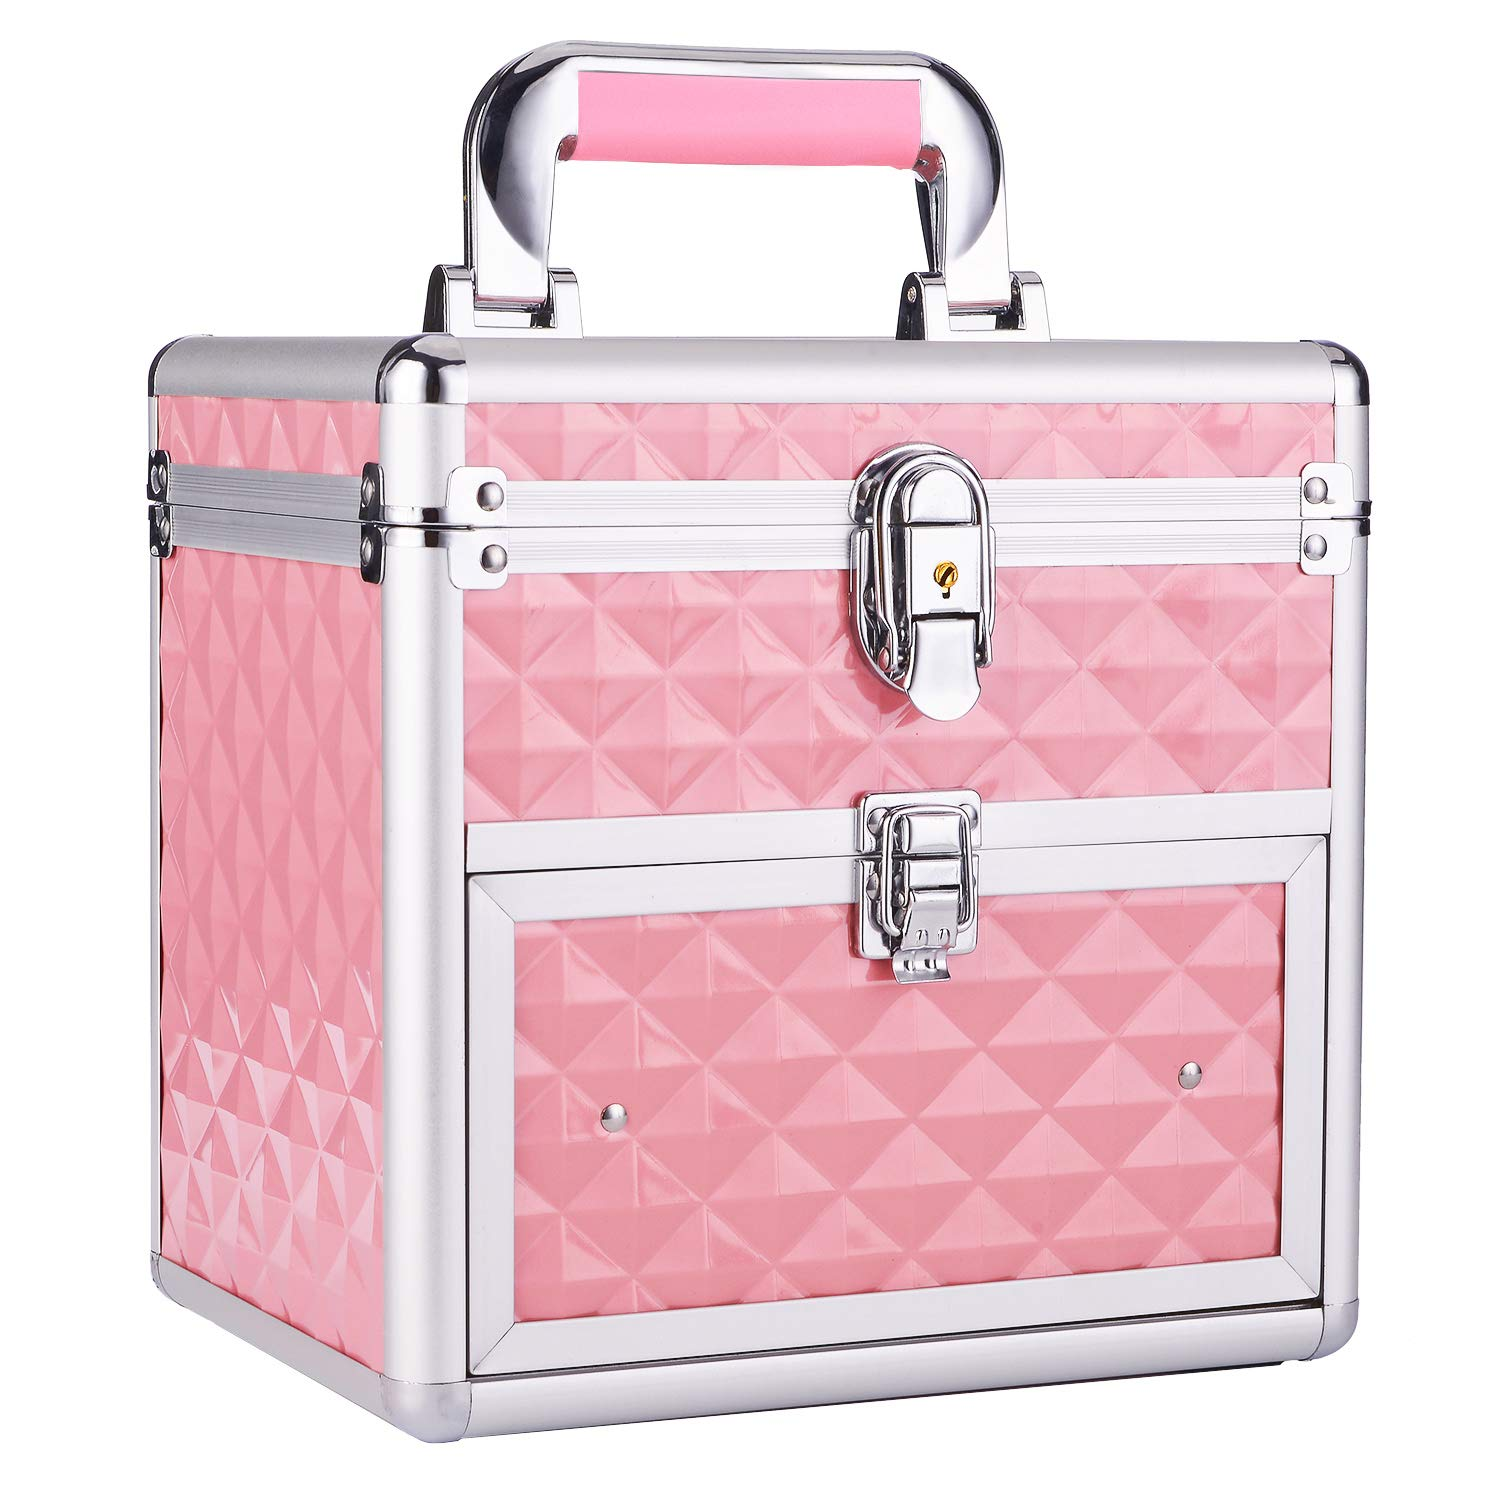 Frenessa Nail Polish Organizer Travel Case Manicure Accessory Storage Makeup Box With Mirror Keys Portable Cosmetic Train Case Jewelry Box with Drawer lockable – Pink